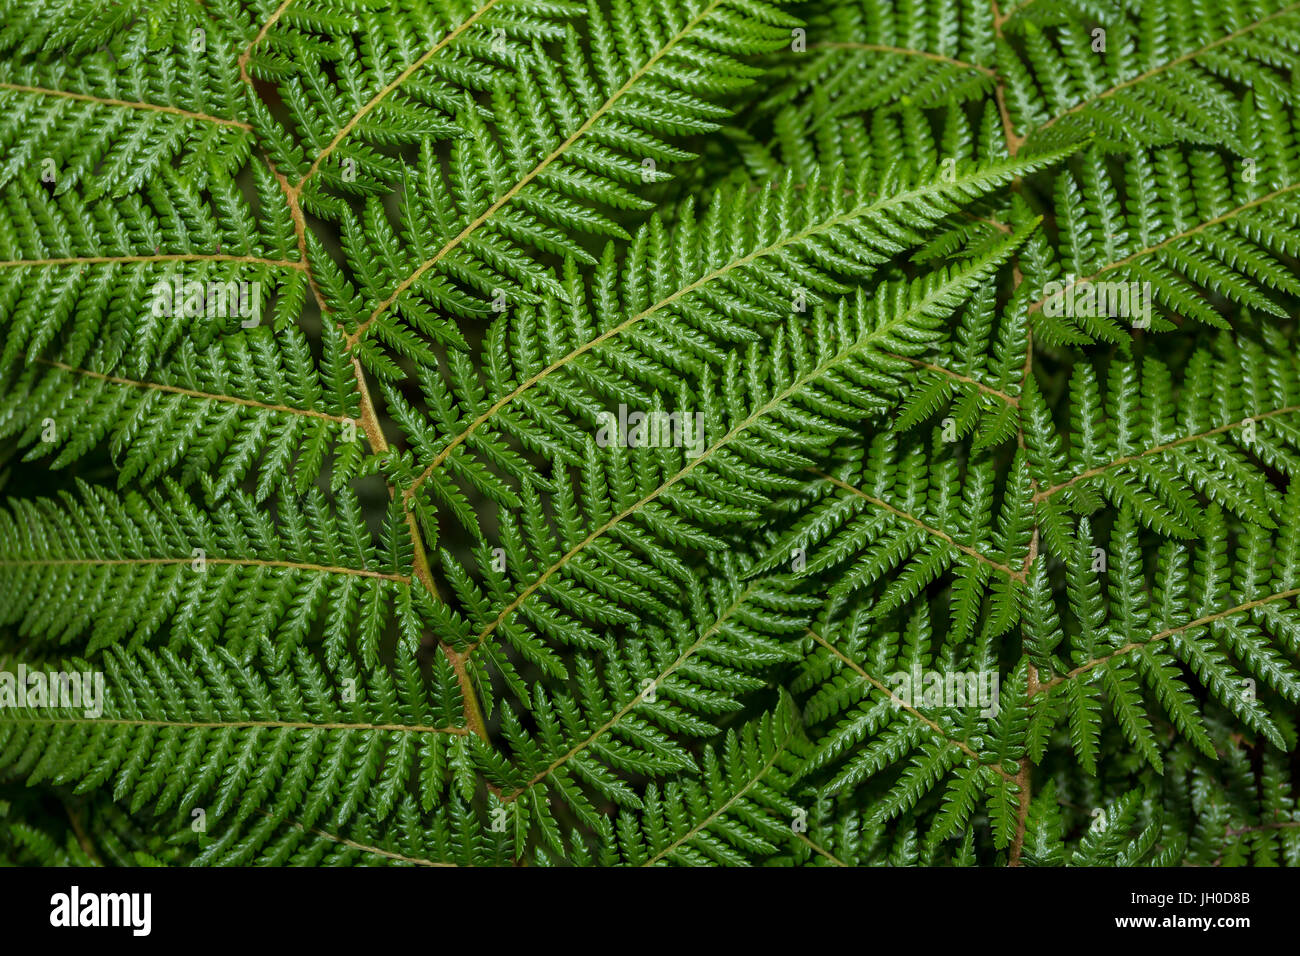 fern leaves, Rombauer Vineyards, Silverado Trail, Saint Helena, Napa Valley, Napa County, California, United States, - Stock Image